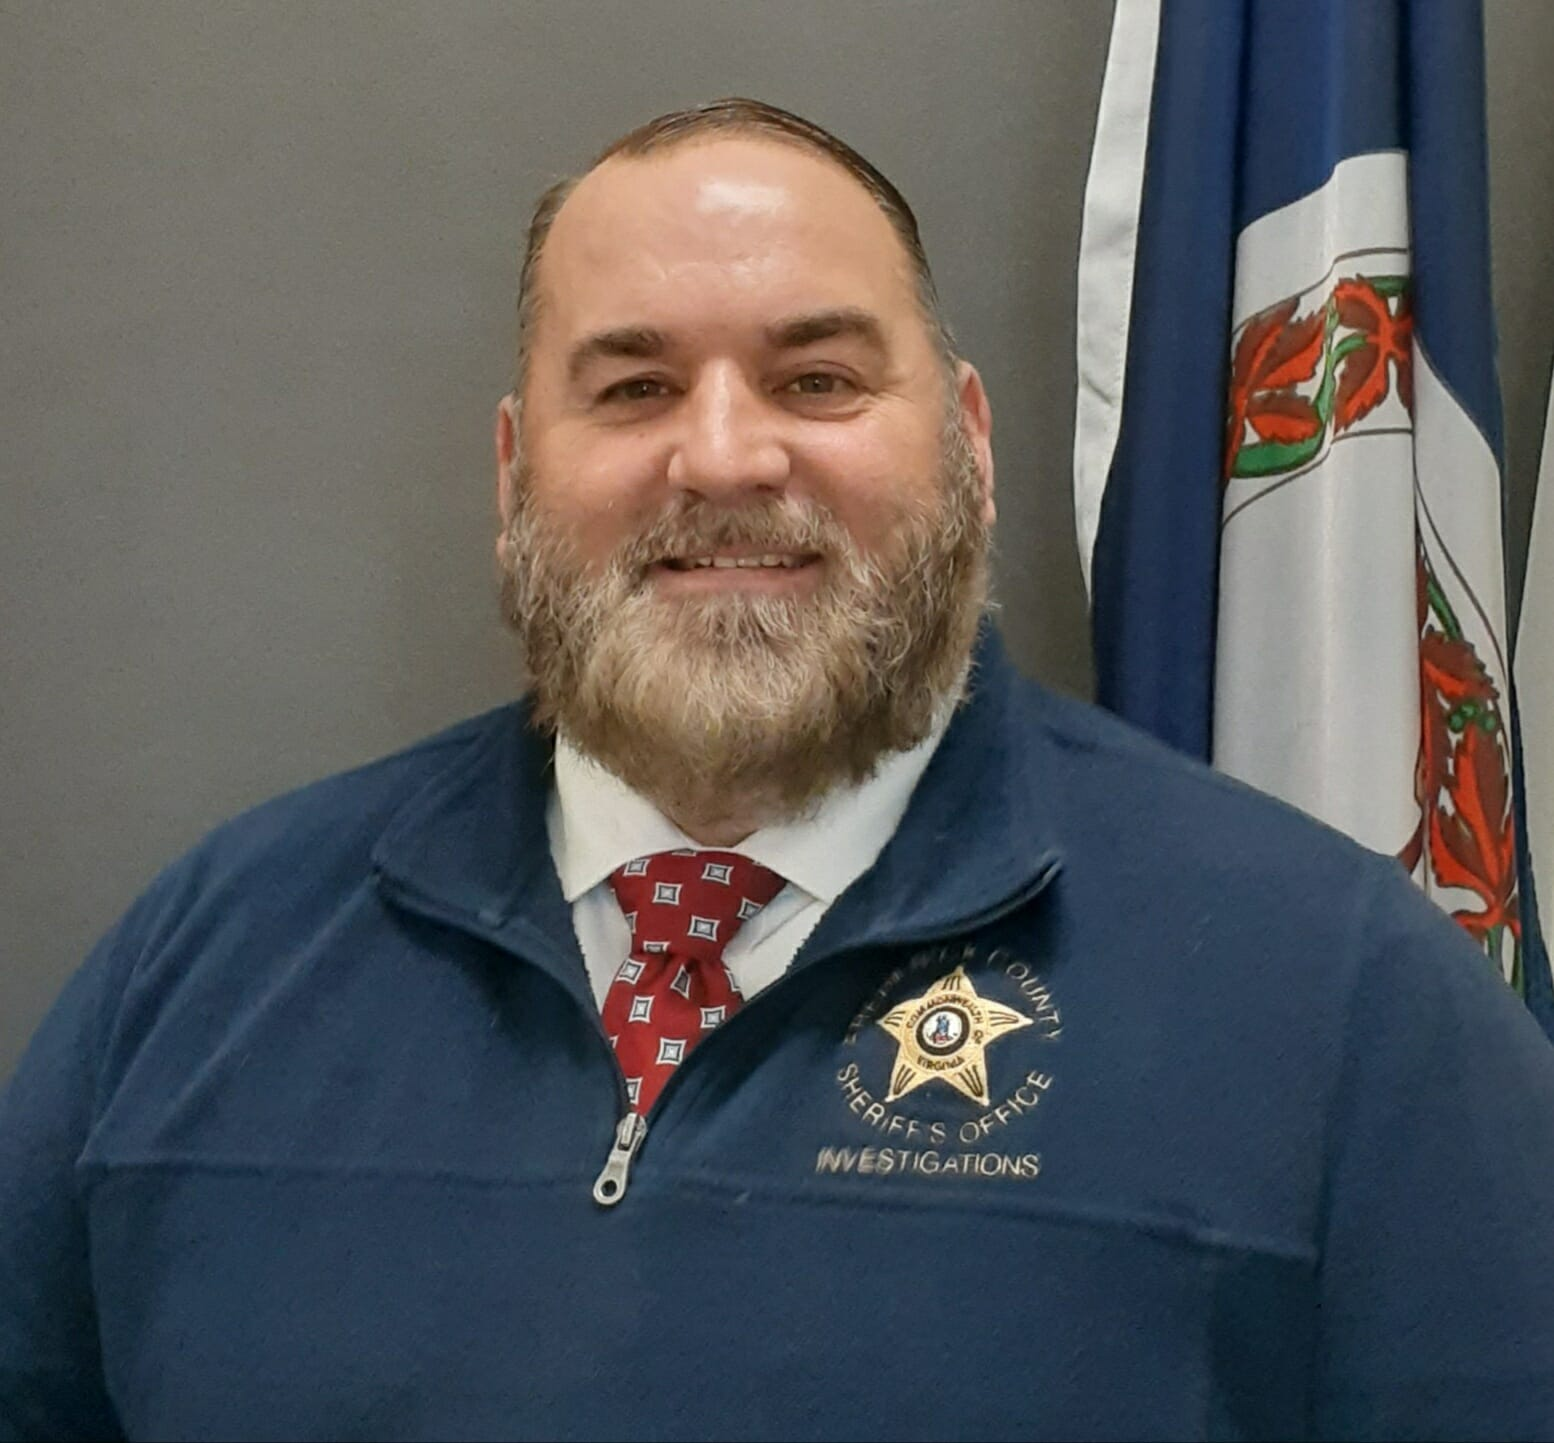 Eric W. Varnau, investigator with the Frederick County, Virginia, Sheriff's Office